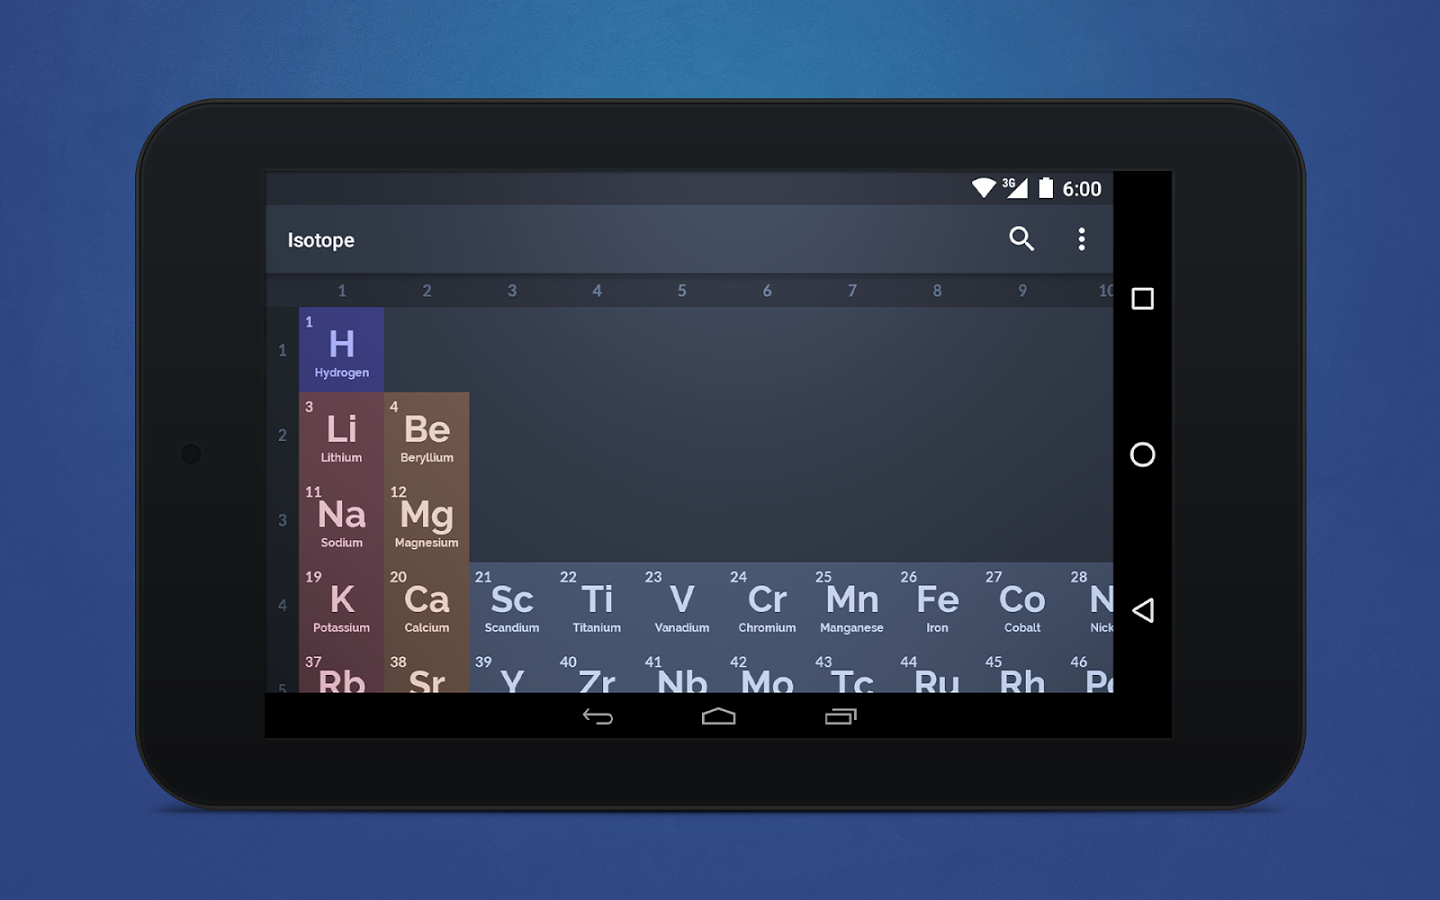 isotope periodic table - Periodic Table Droid Apk